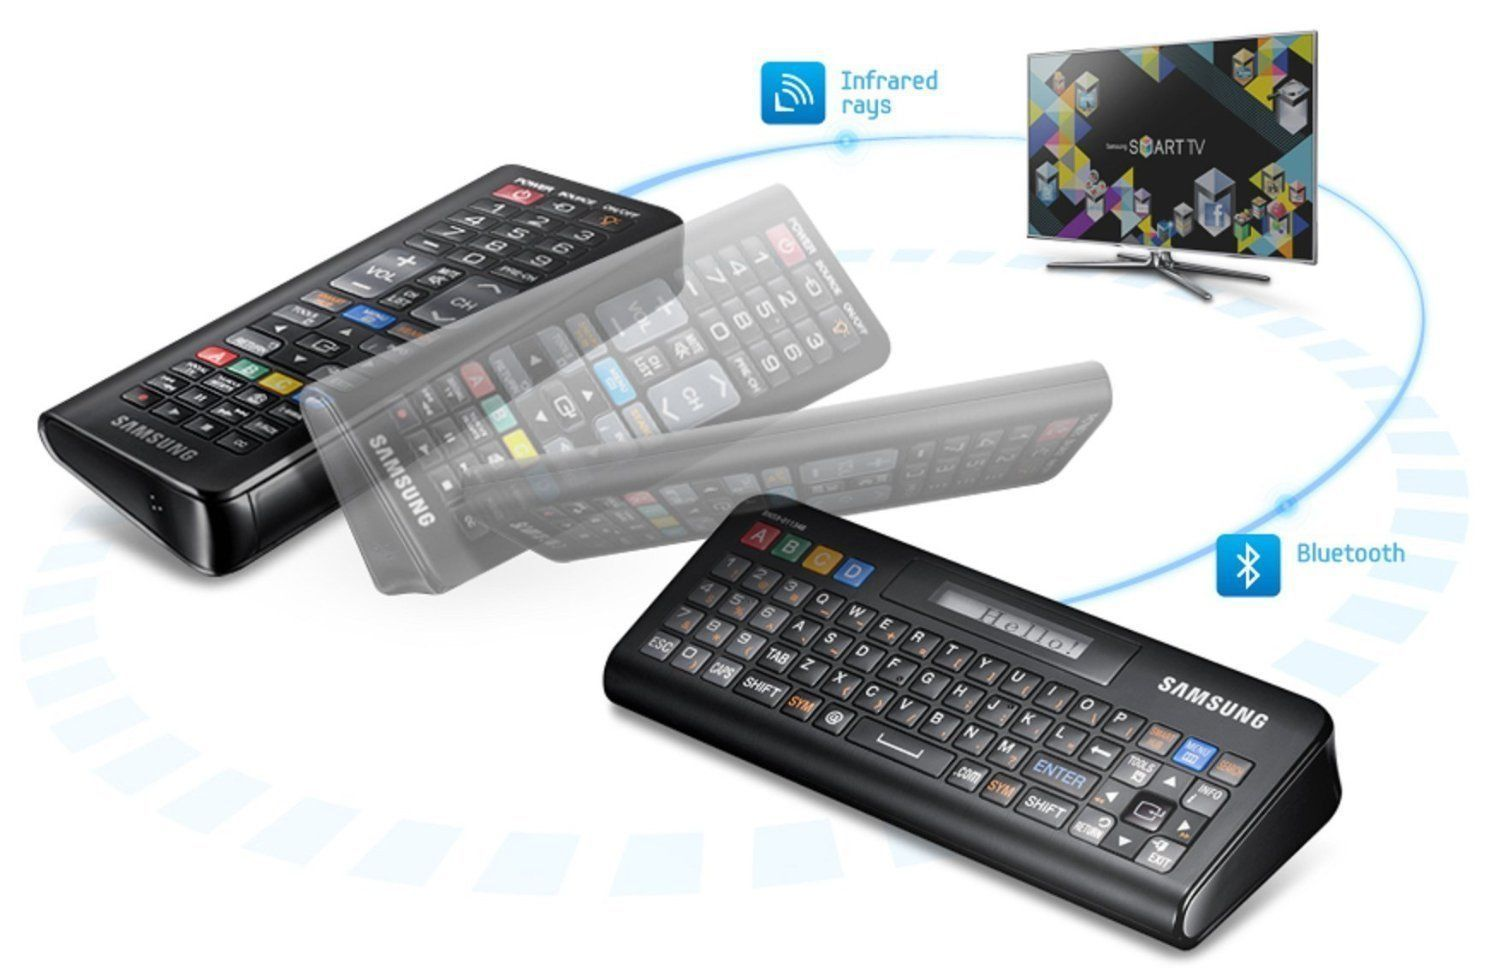 SAMSUNG SMART 2 in1 QWERTY REMOTE CONTROL FOR SAMSUNG